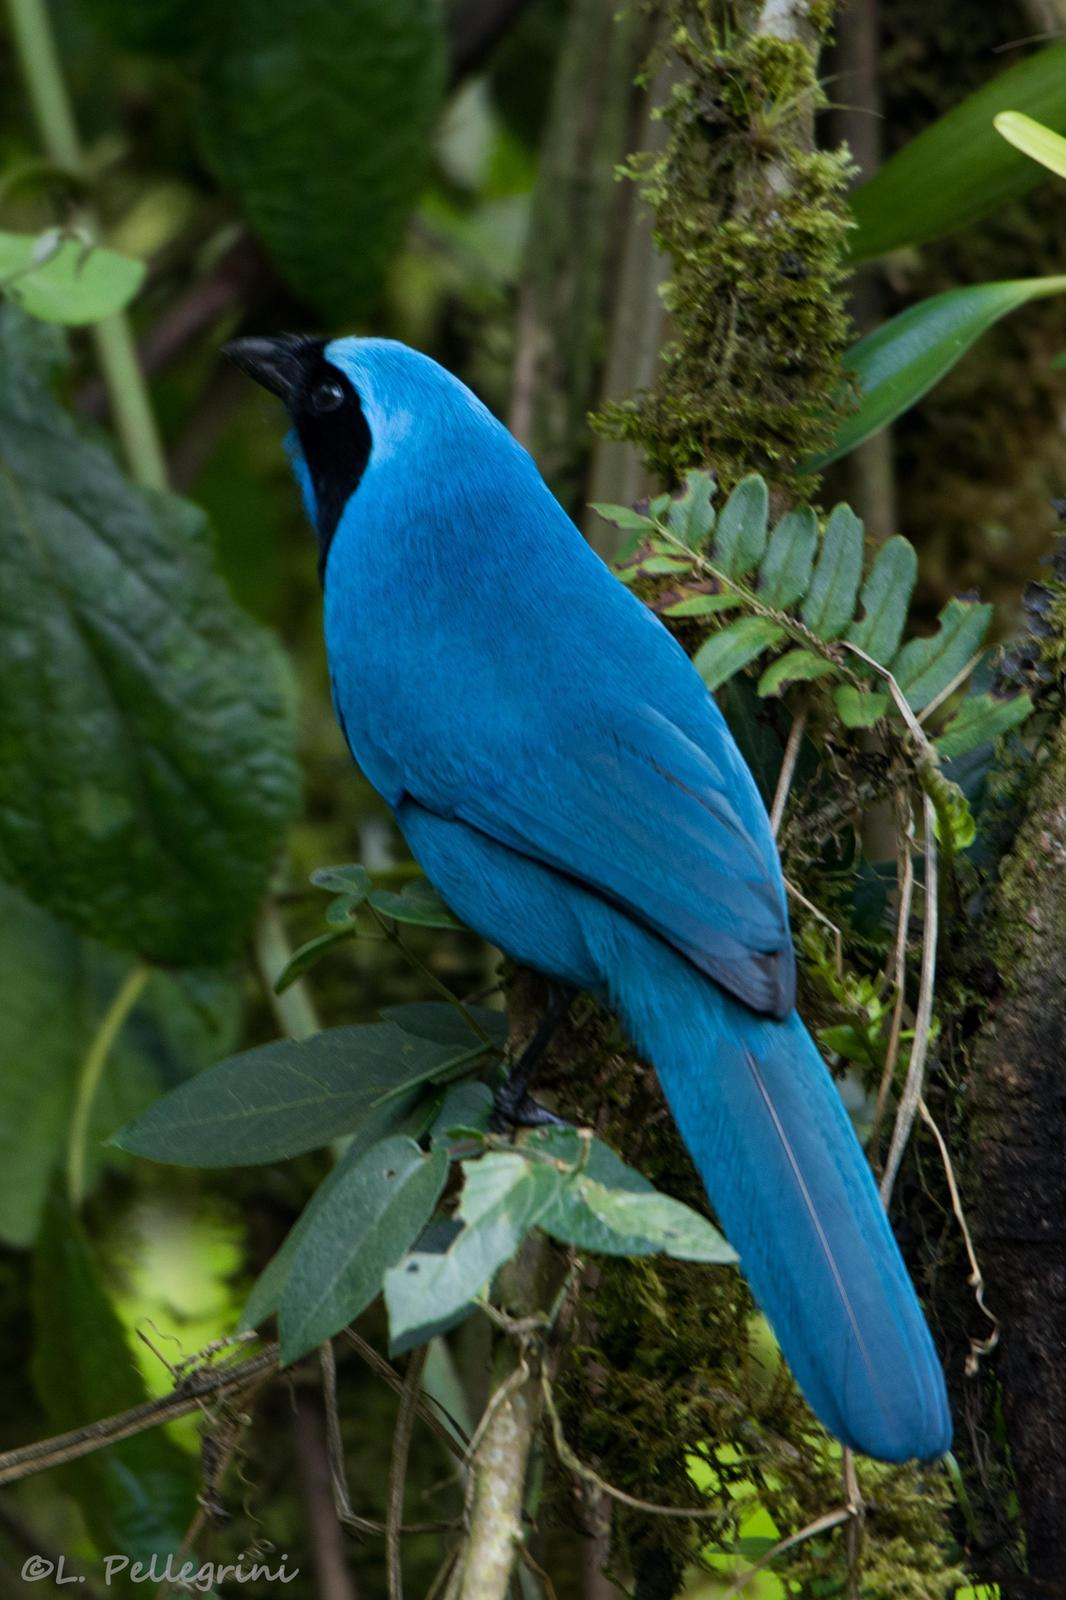 Turquoise Jay Photo by Laurence Pellegrini